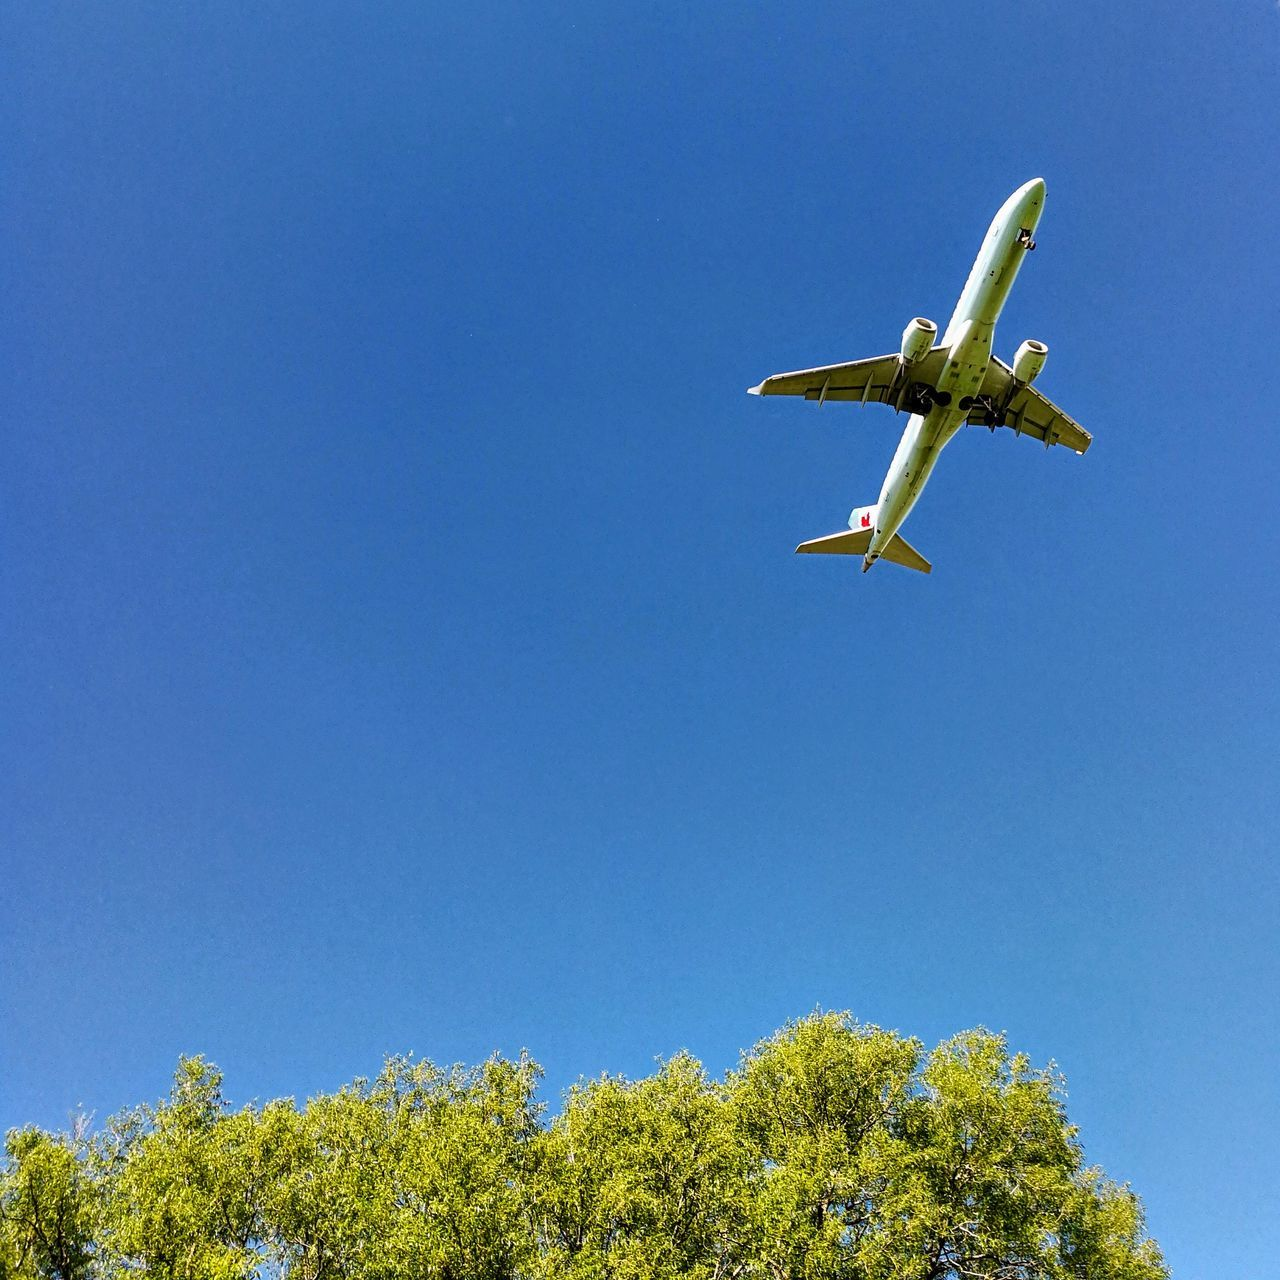 No People Low Angle View Clear Sky Sky Flying Blue Airplane